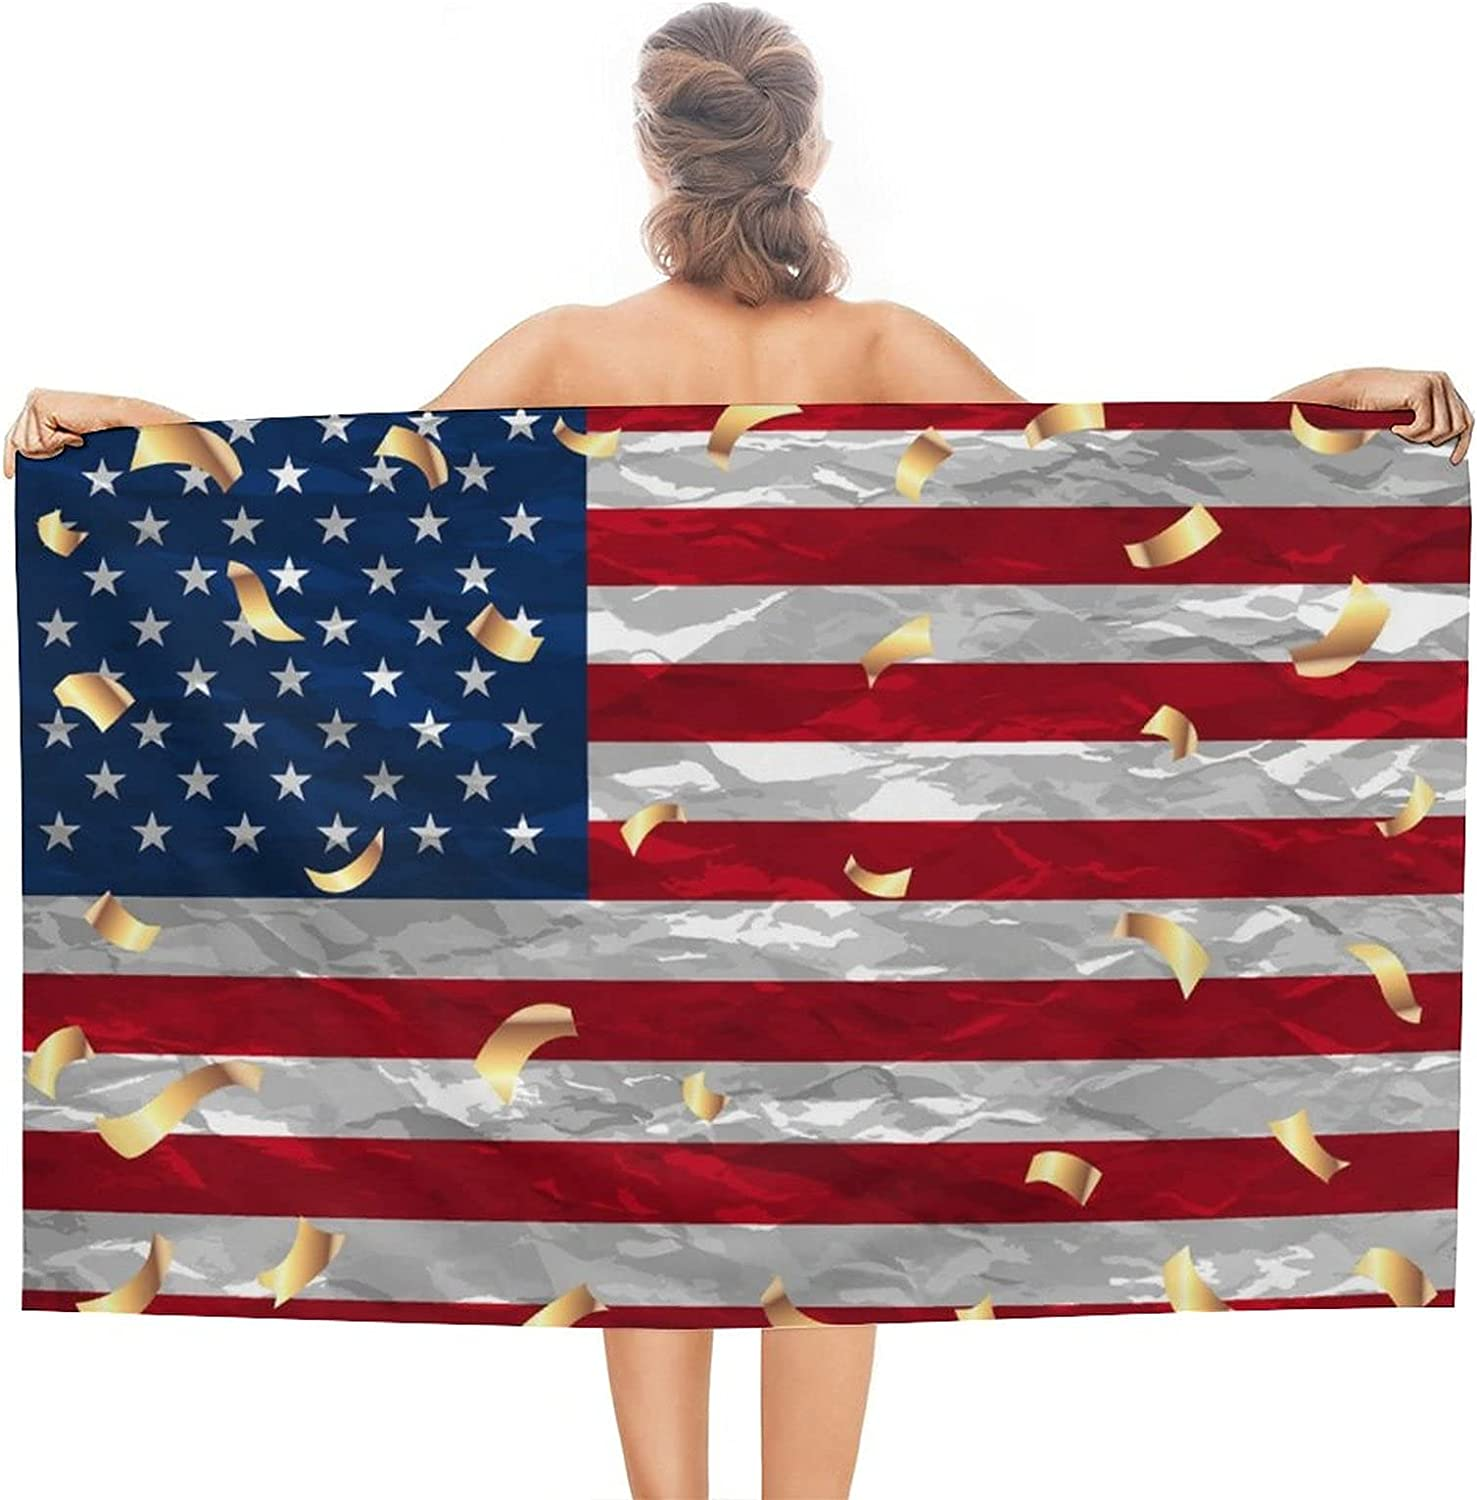 PSSMMAL USA Flag Beach Towel Oakland Mall Quick for Bathroom Adults Dry Recommendation